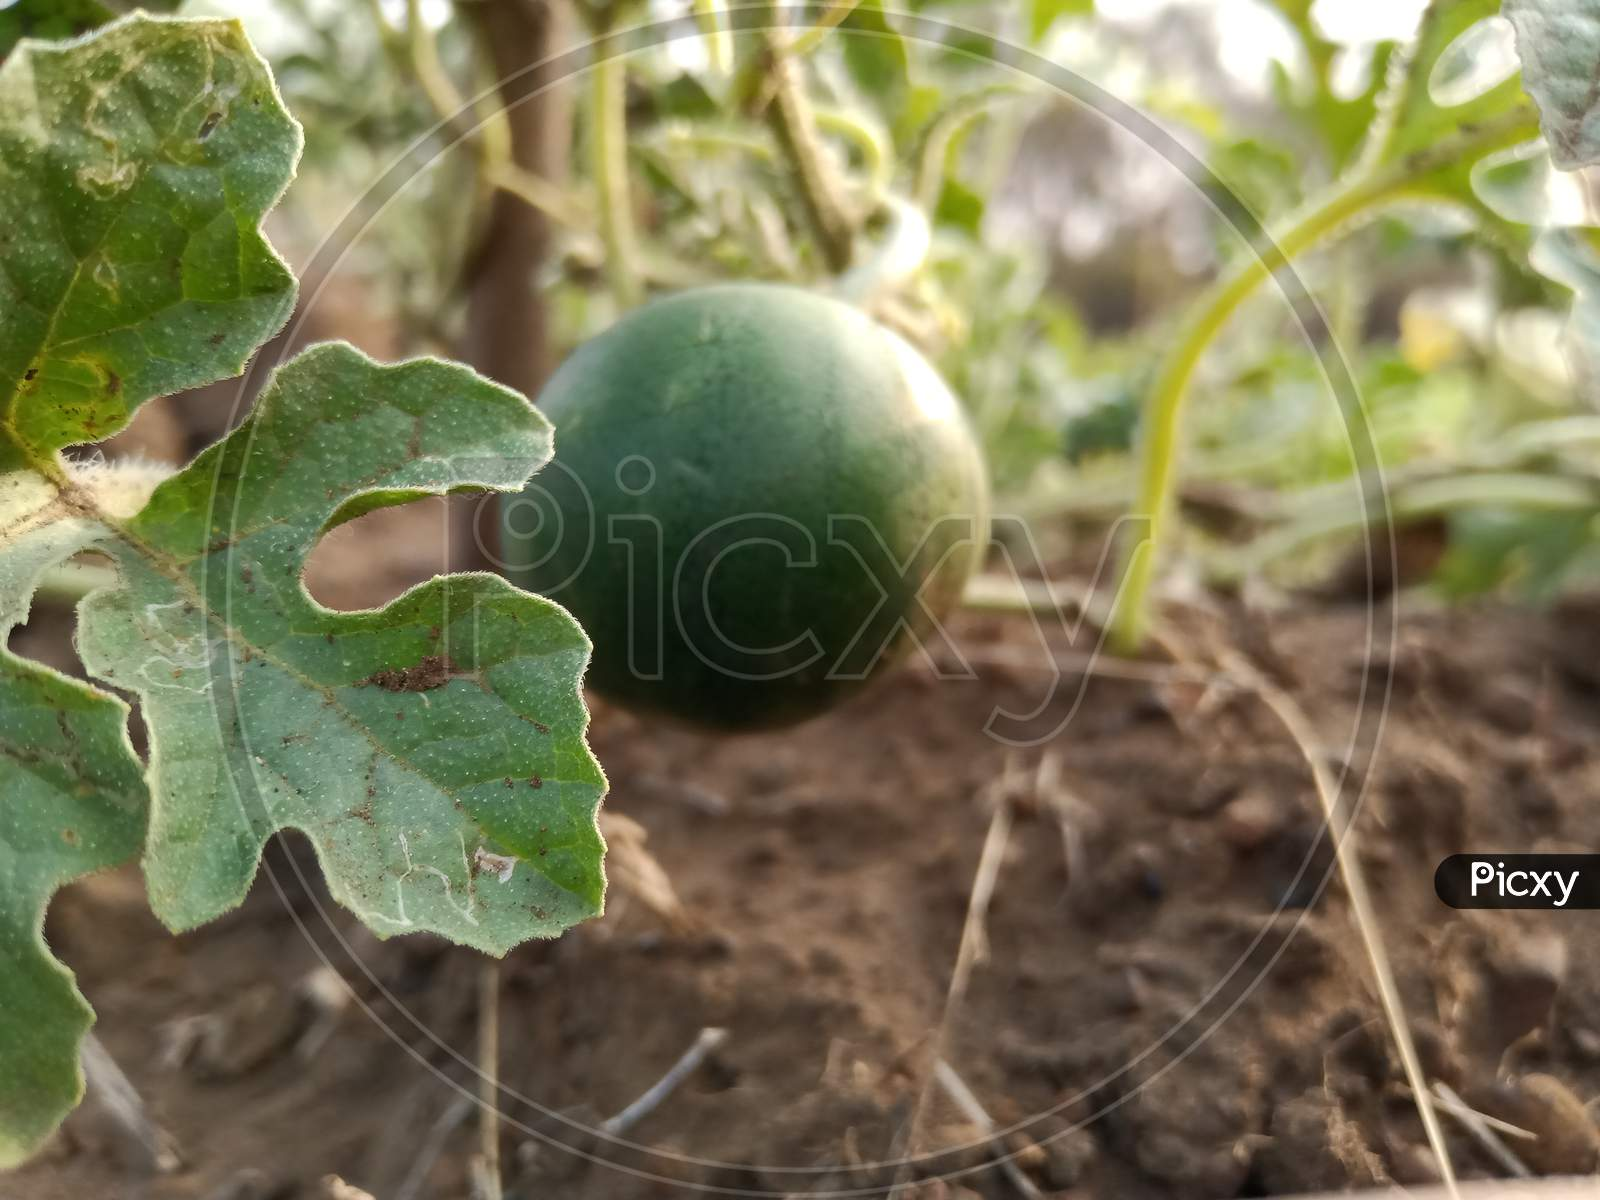 Watermelons are starting to grow in the fields